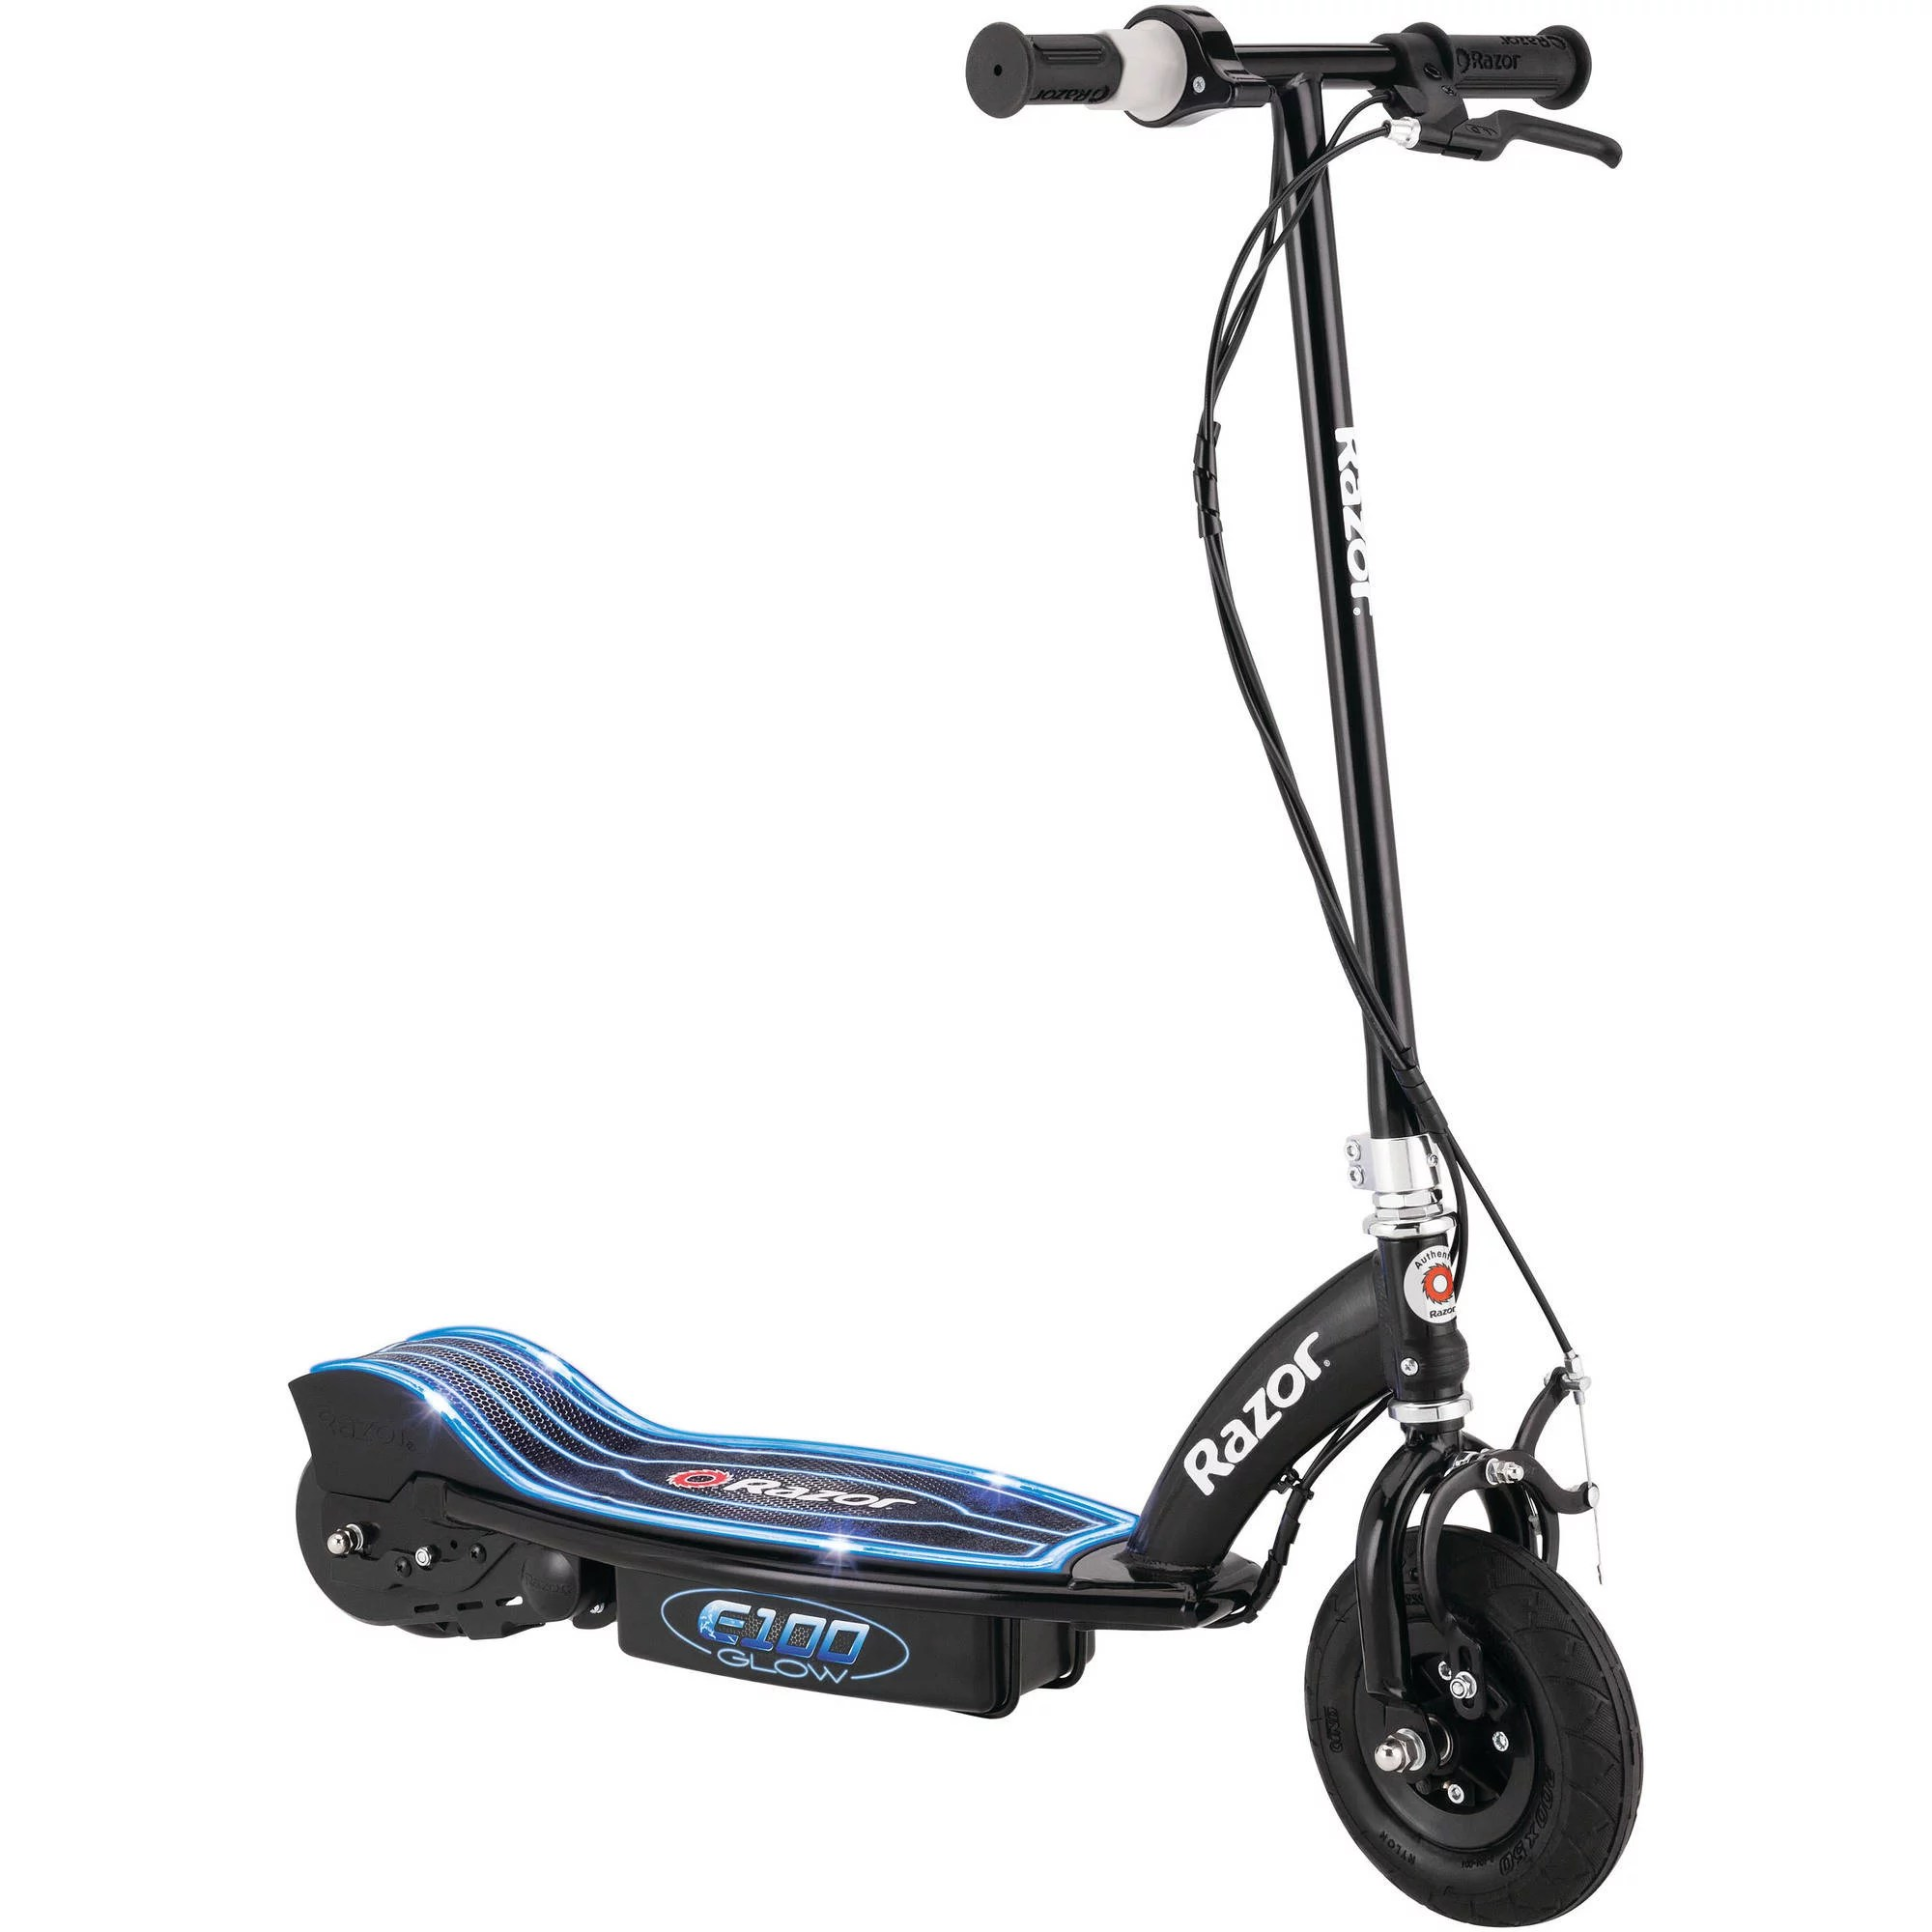 walmart for product image razor e100 electric powered glow electric scooter black satellite electric scooter razor wiring diagram  [ 2000 x 2000 Pixel ]